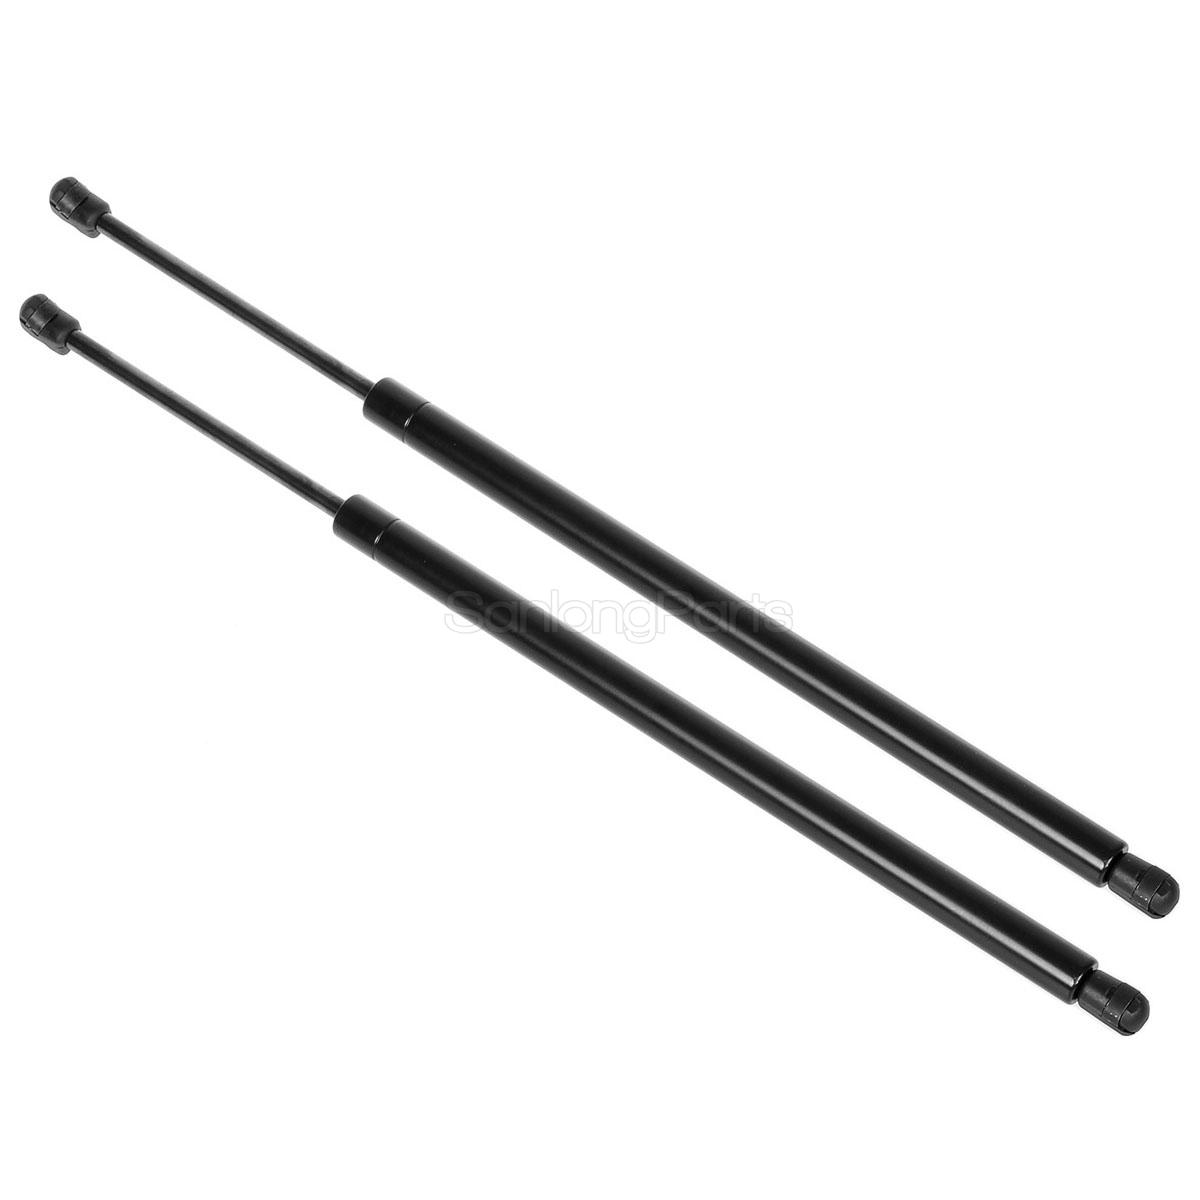 1pair Tailgate Hatch Lift Support For Chevrolet